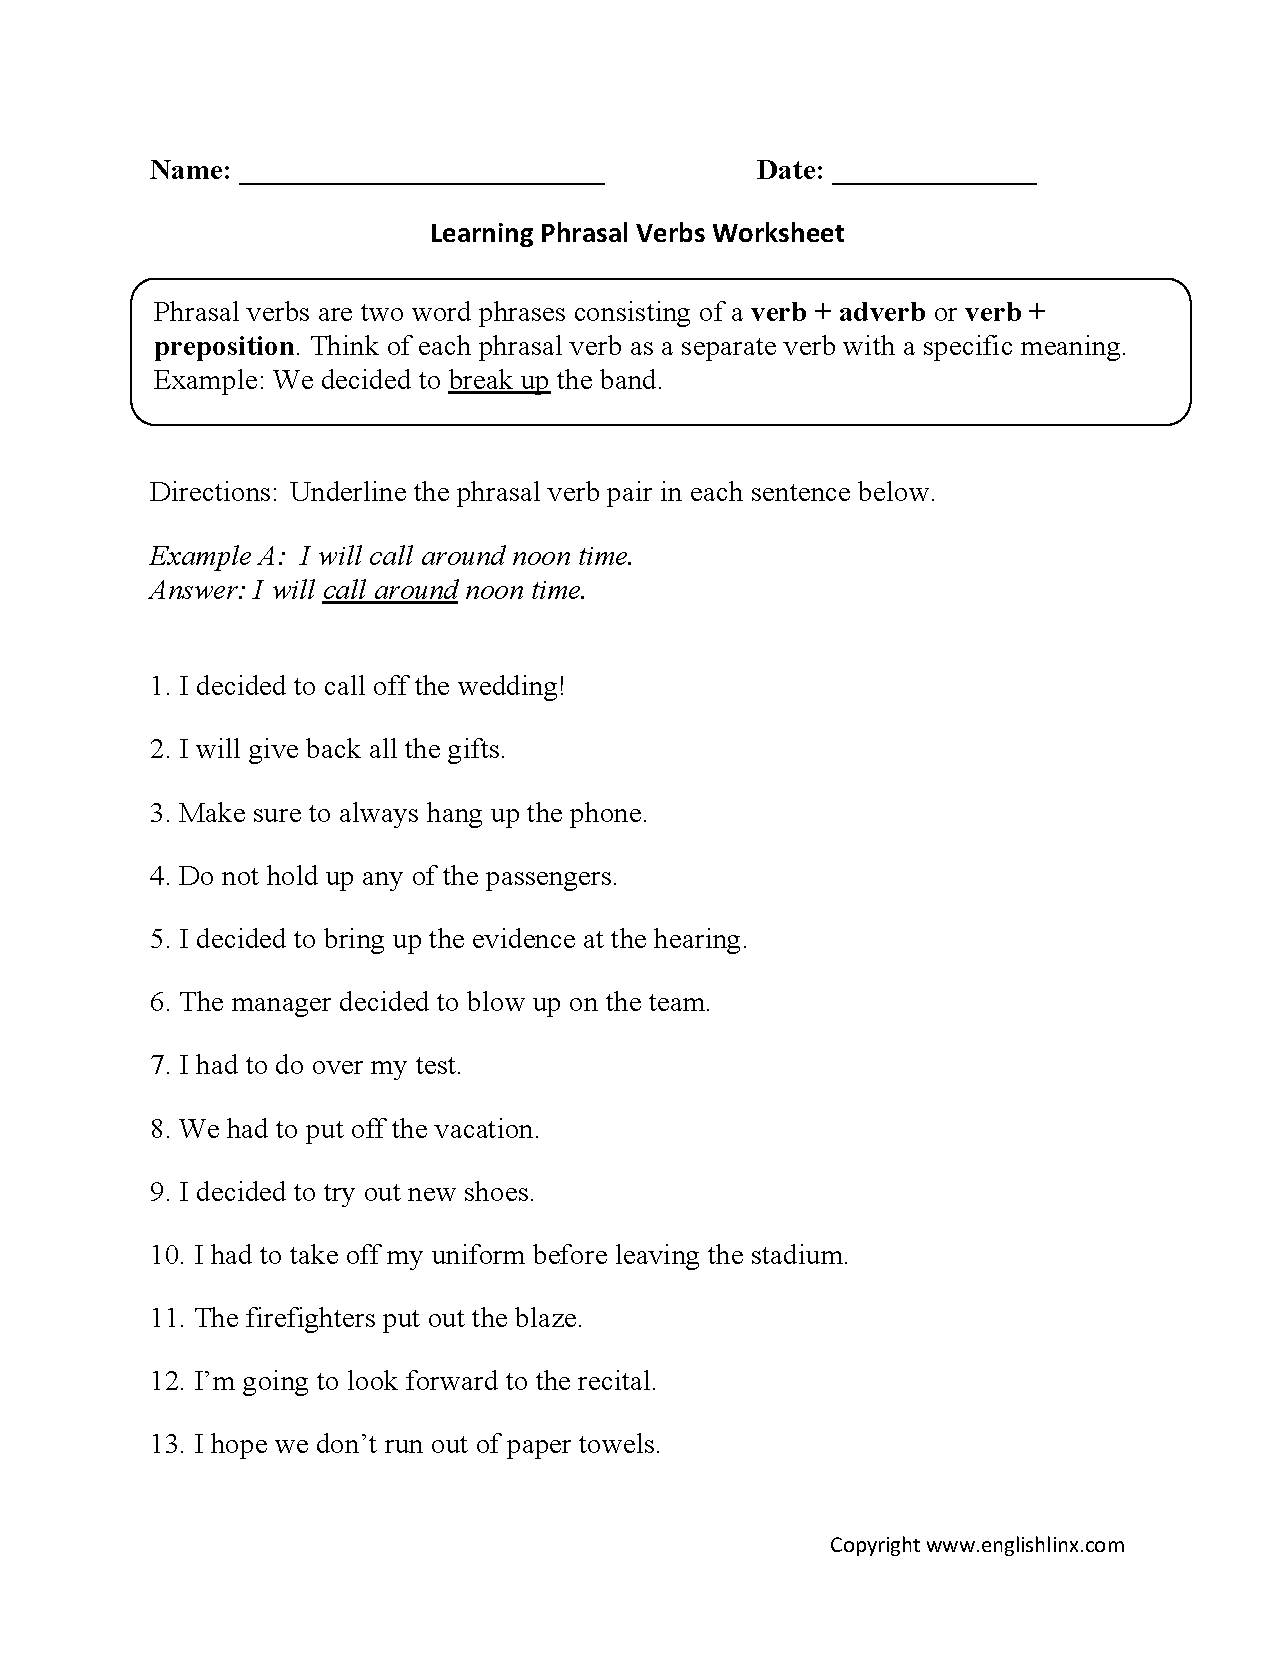 Worksheets Linking Verb Worksheets englishlinx com verbs worksheets phrasal worksheets